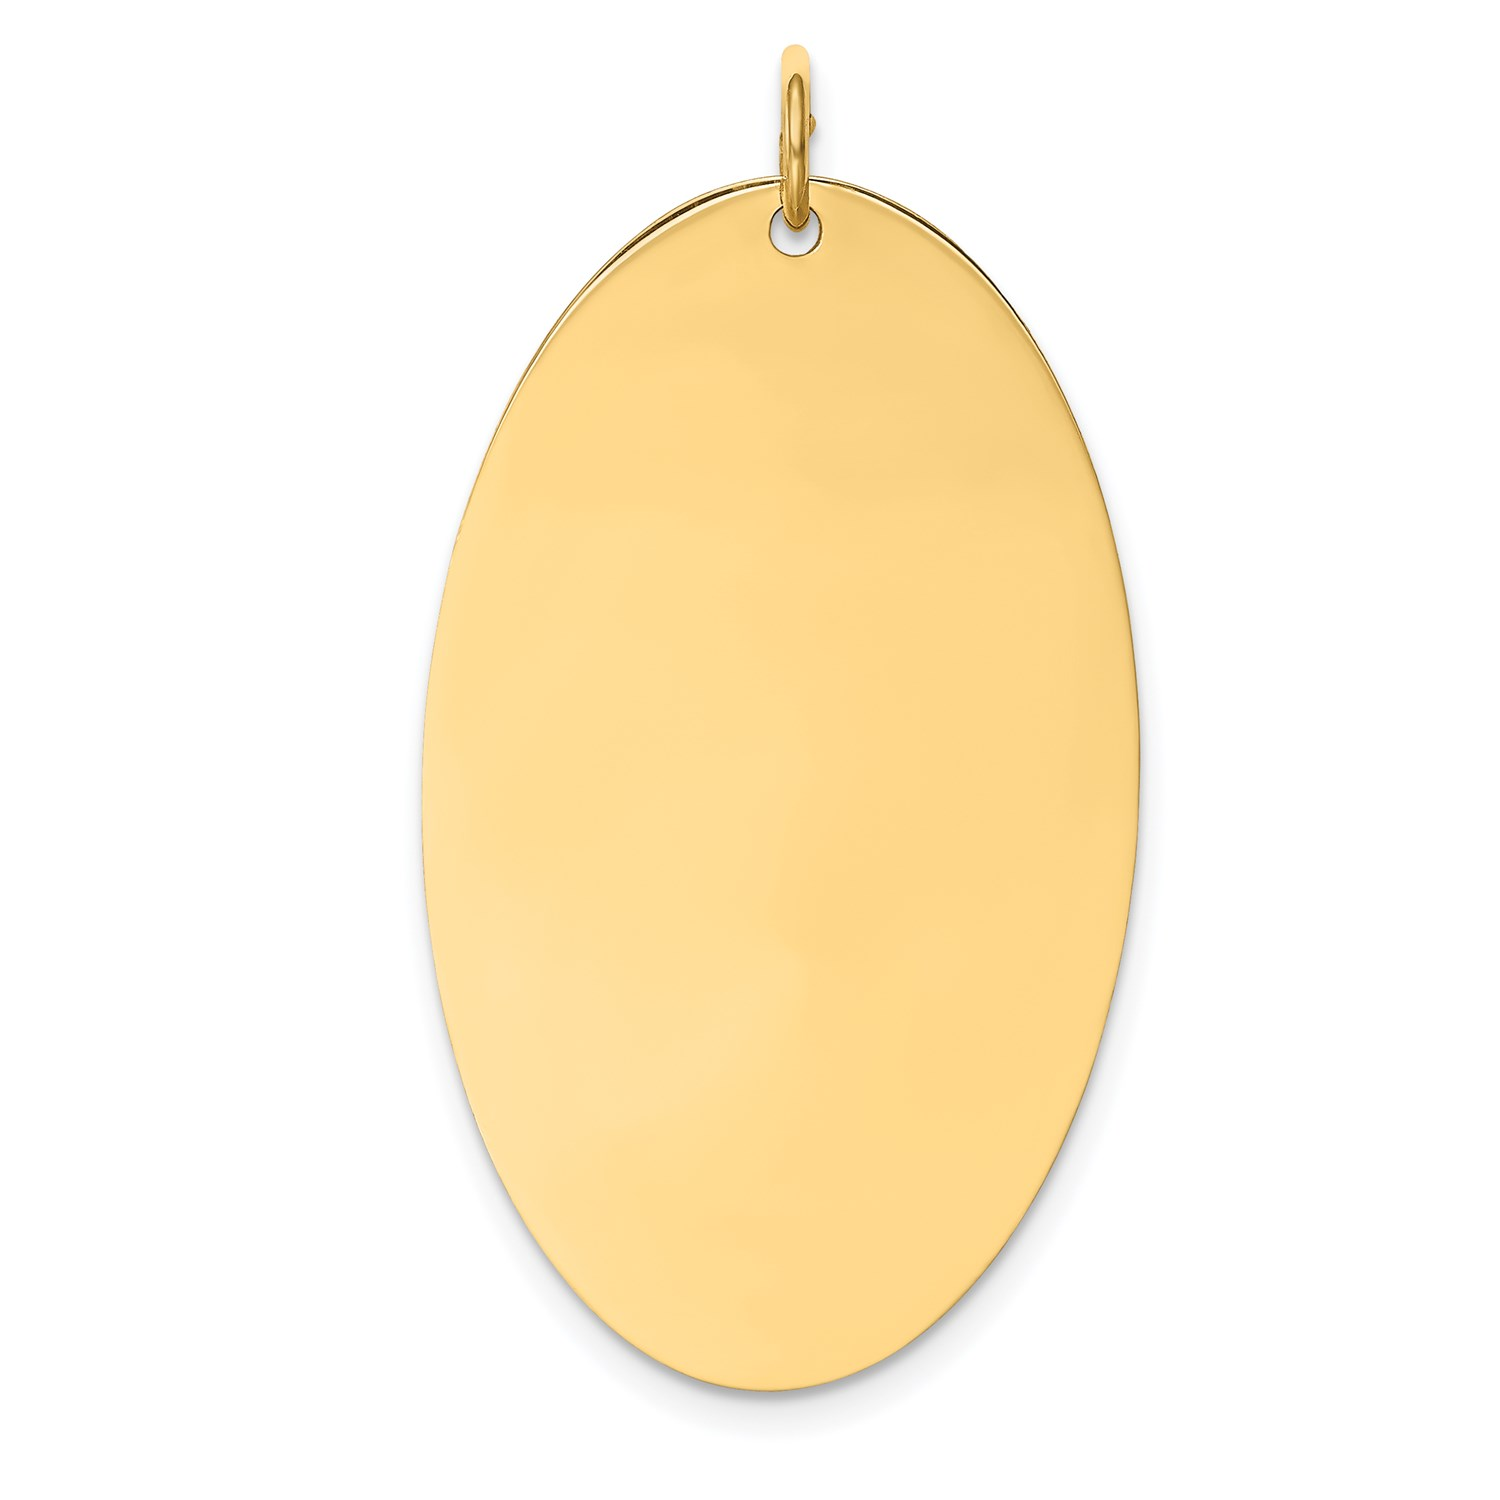 14k Yellow gold 0.027 Gauge Engravable Elliptical Disc Charm (1.5in x 0.8in)